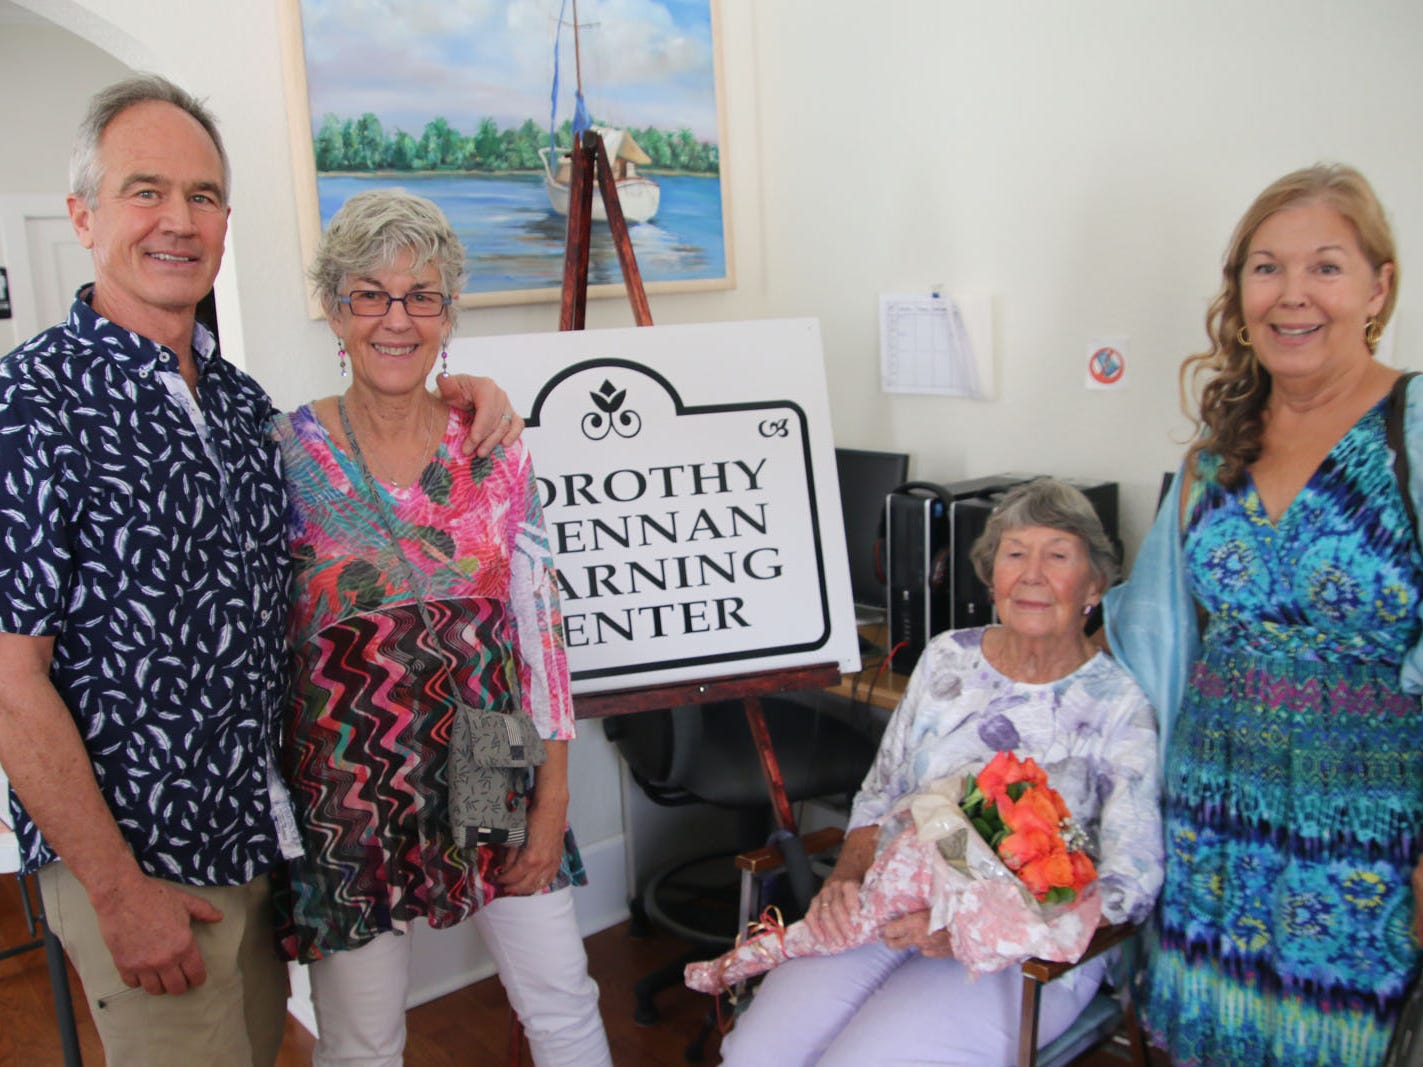 Dorothy Brennan, seated, with Tom, Connie and Judith Brennan at the open house celebrating the new Dorothy Brennan Learning Center in Fort Pierce.